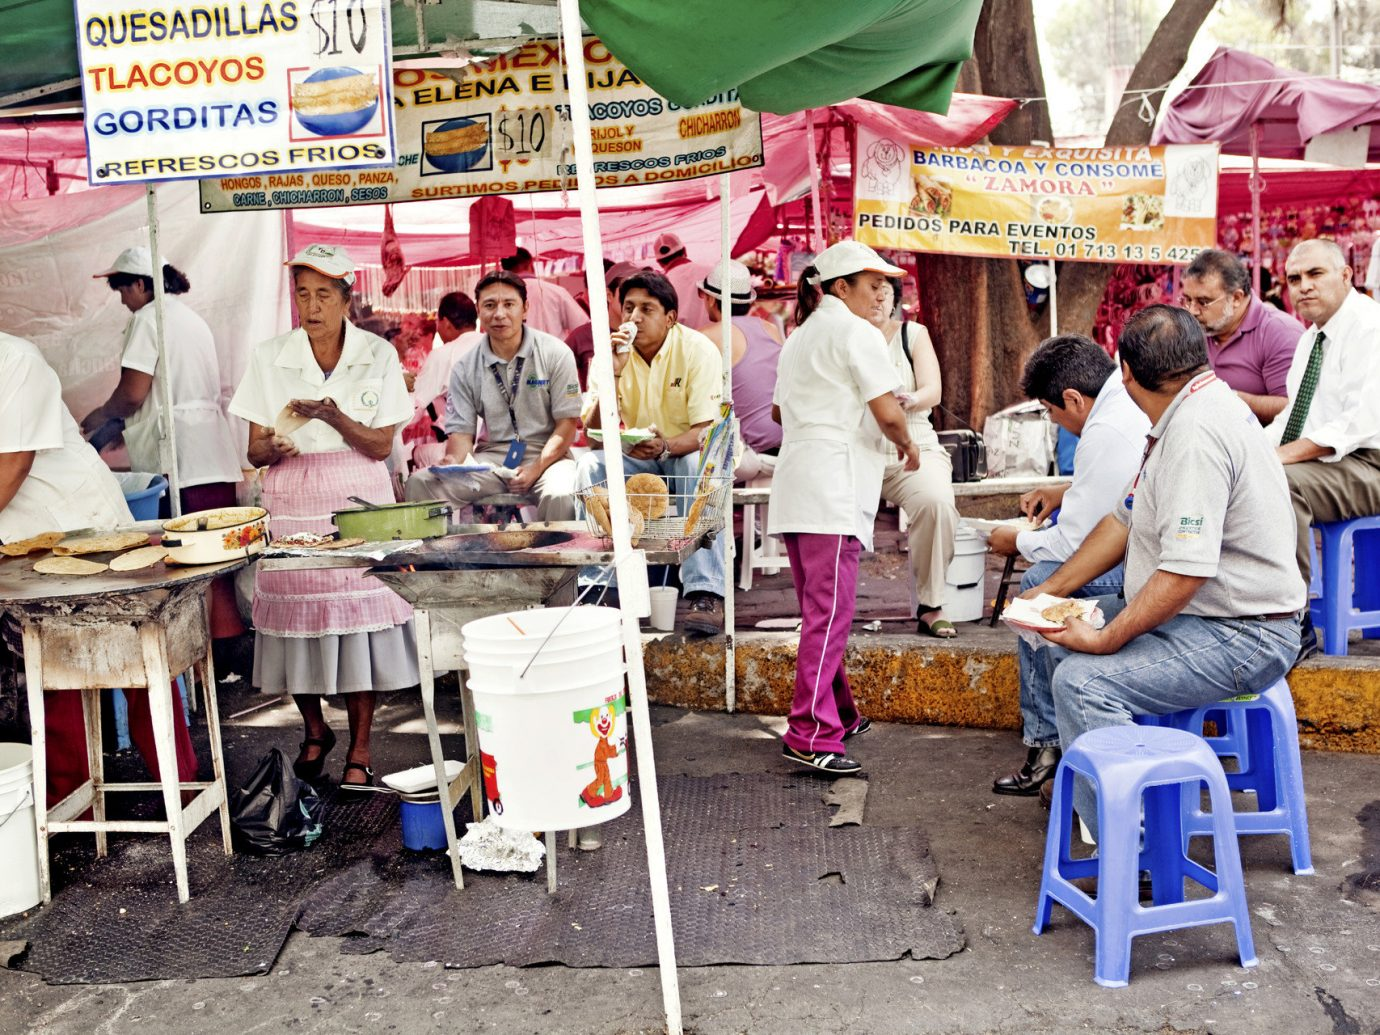 Offbeat Trip Ideas person City public space marketplace vendor market human settlement bazaar street food people group food cuisine stall fair